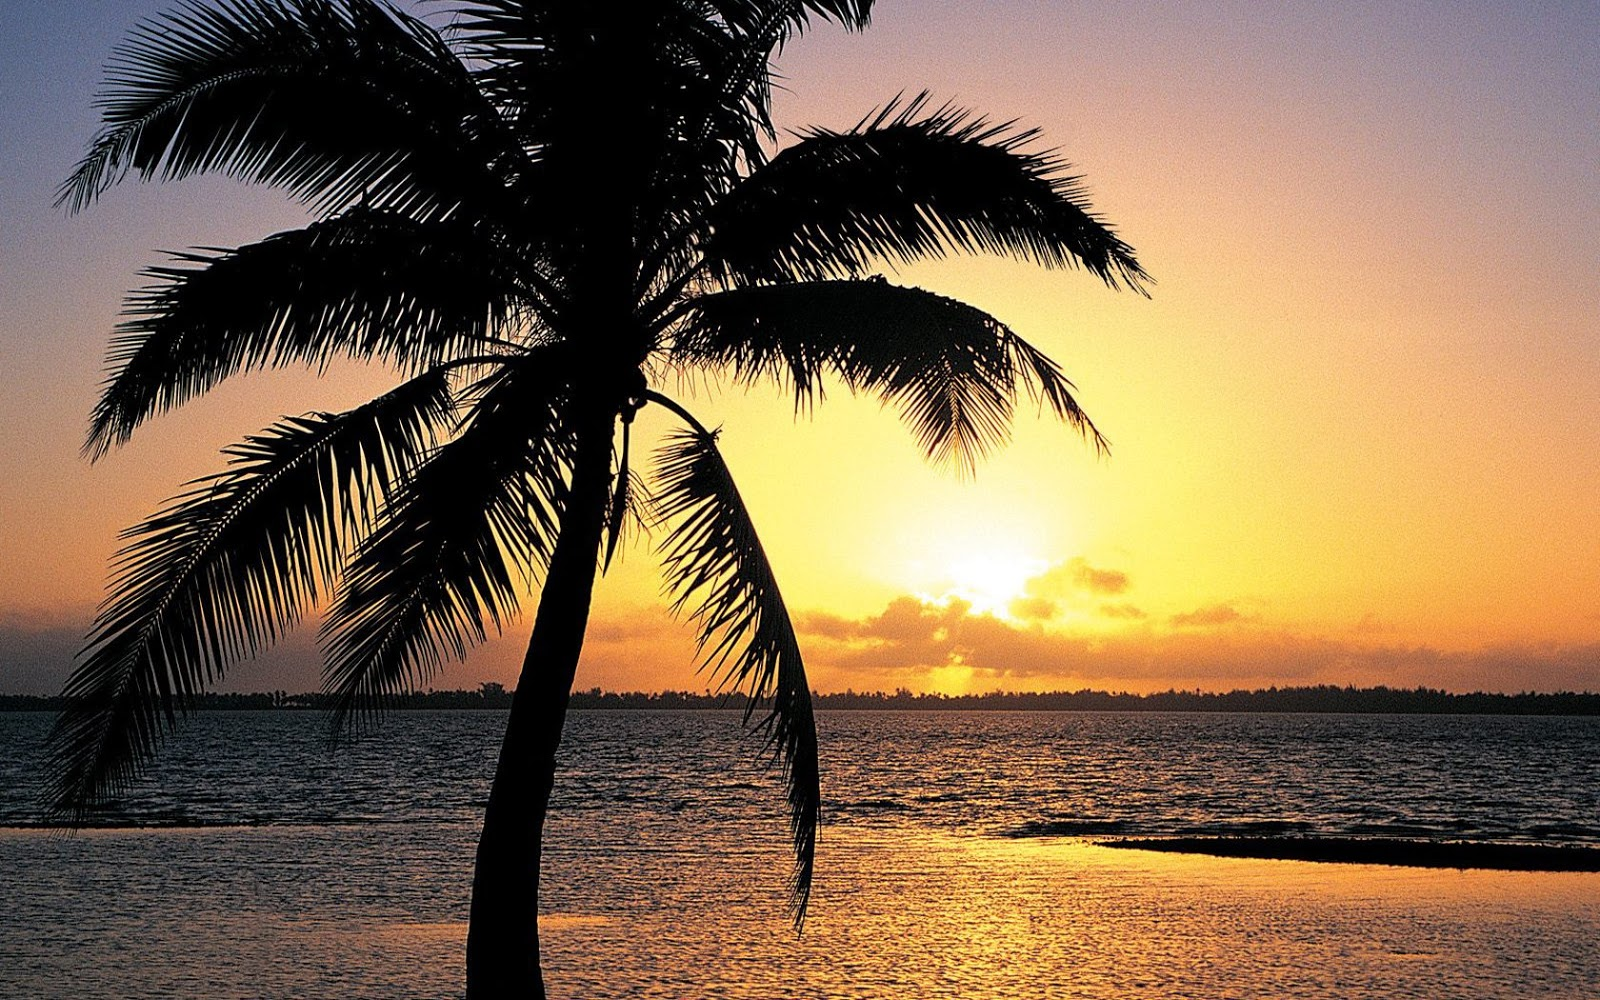 Palm Trees On The Beach: Tropical Island Sunset